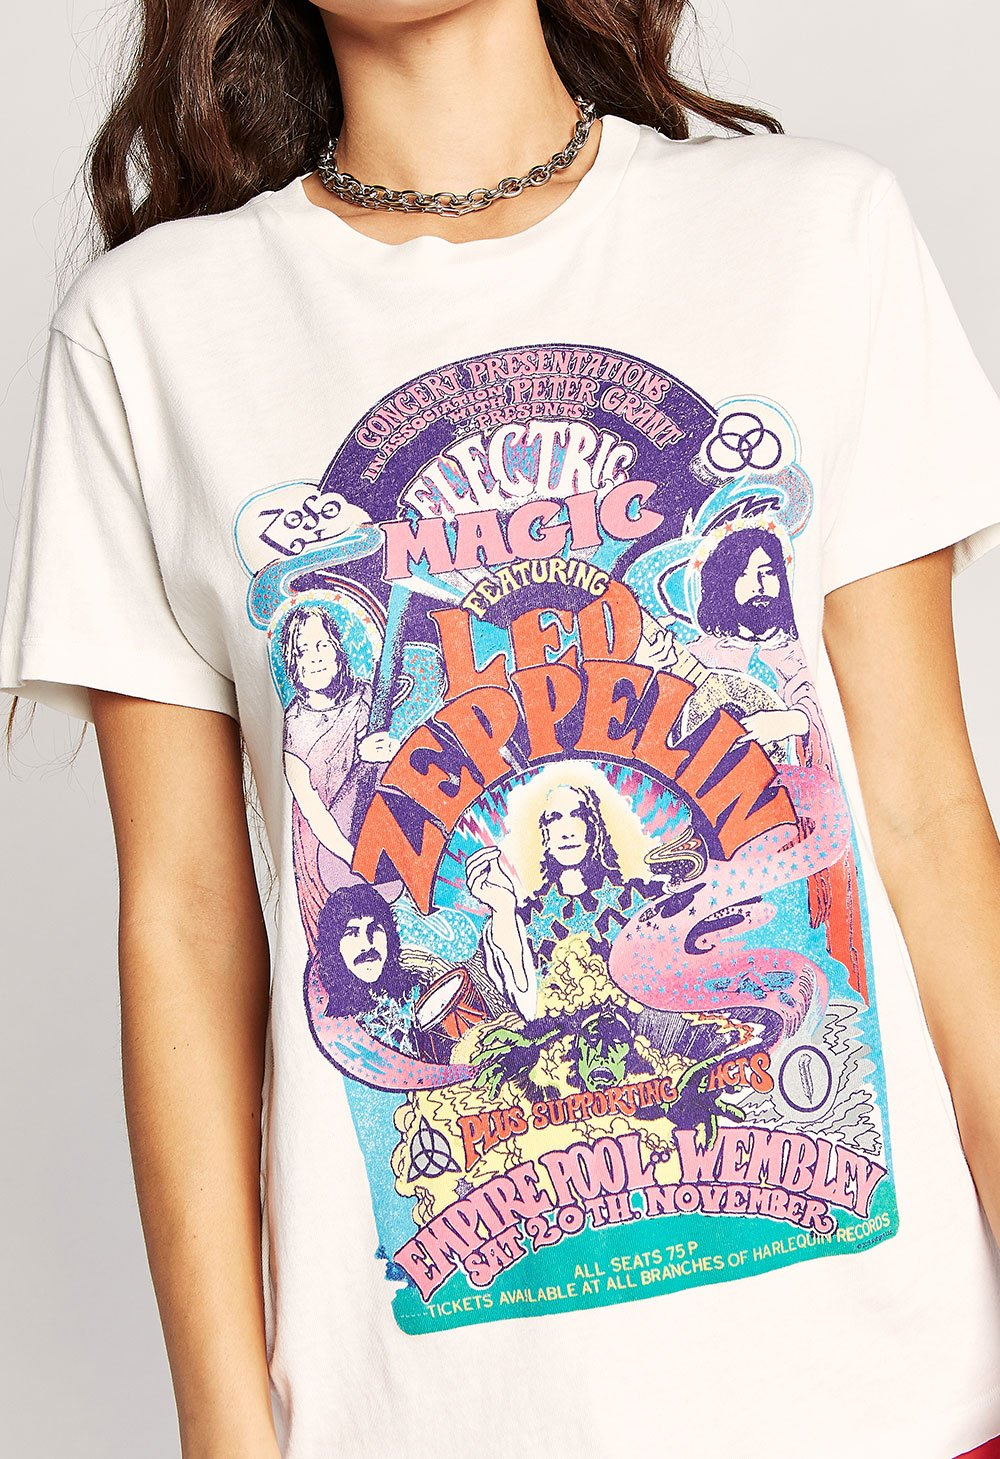 Daydreamer Led Zeppelin Electric Magic Weekend Tee The Rose Hanger